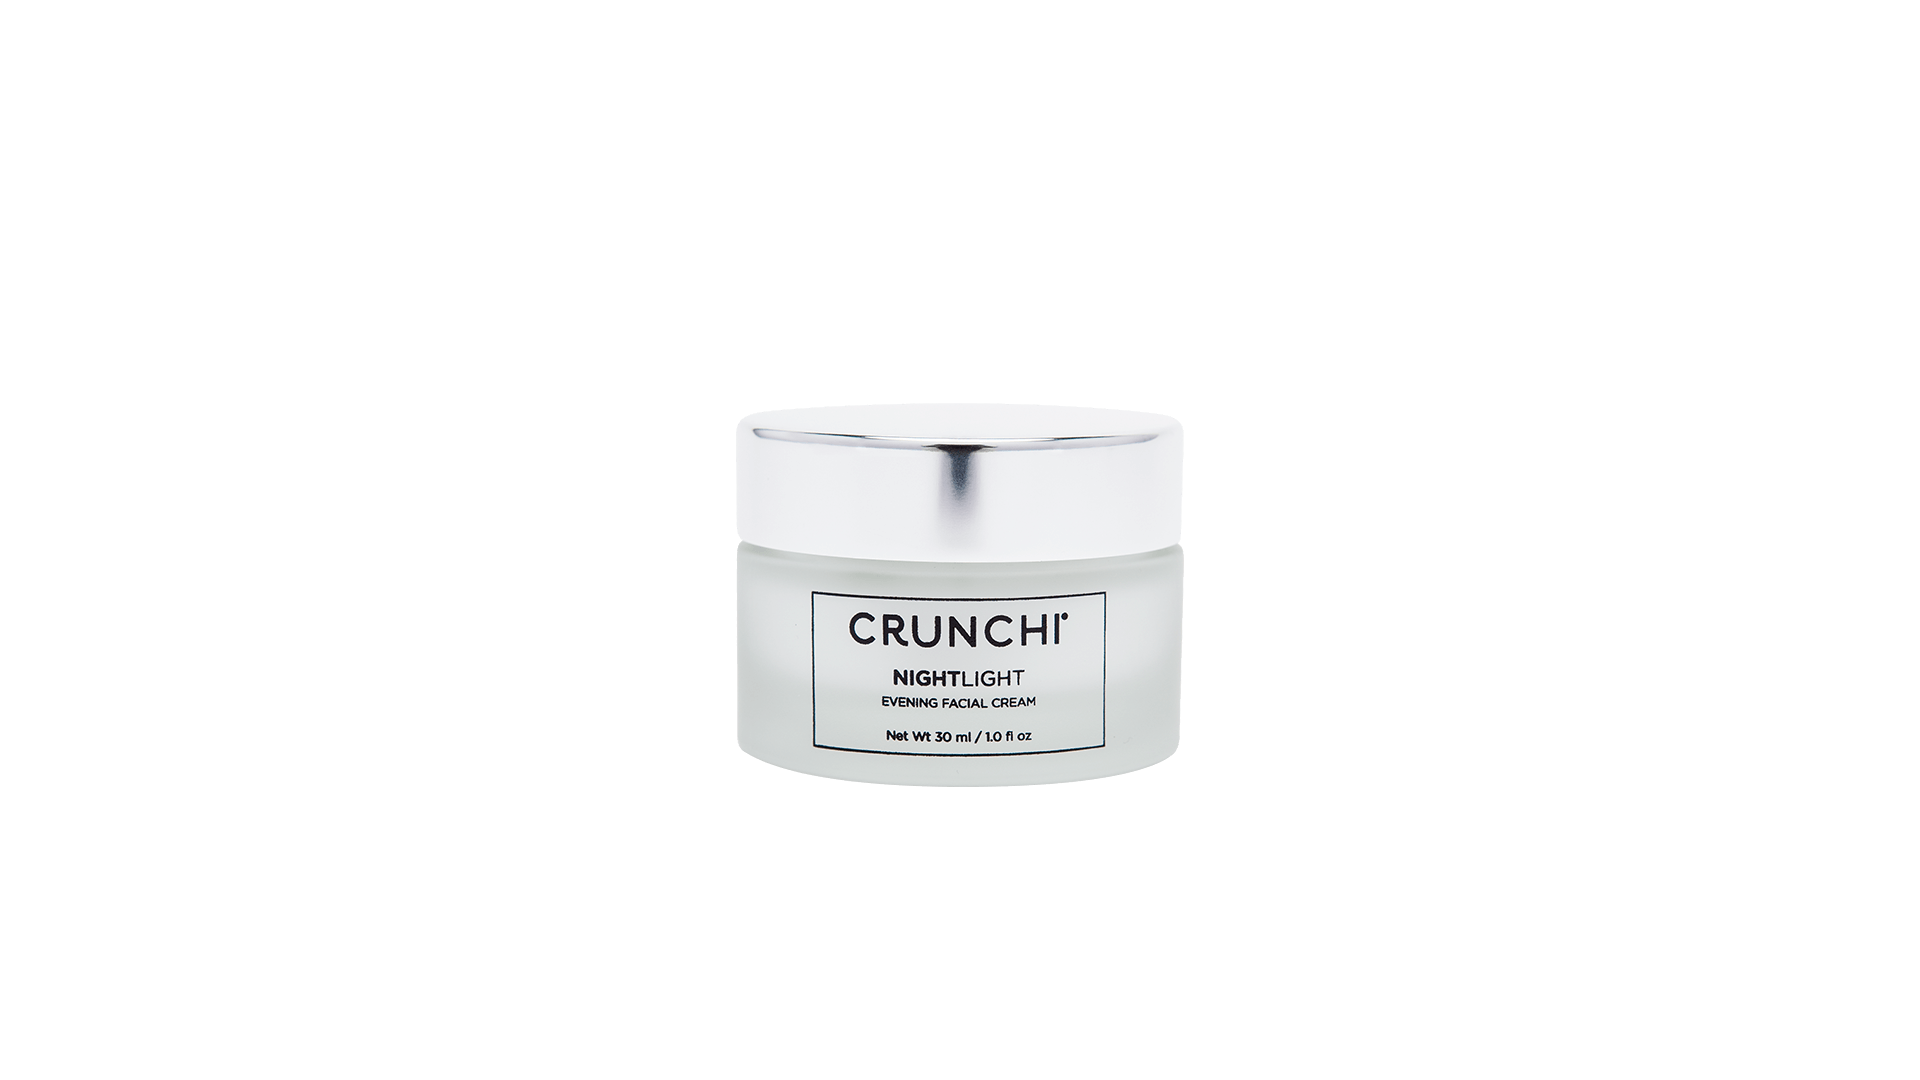 Nightlight Facial Cream Product